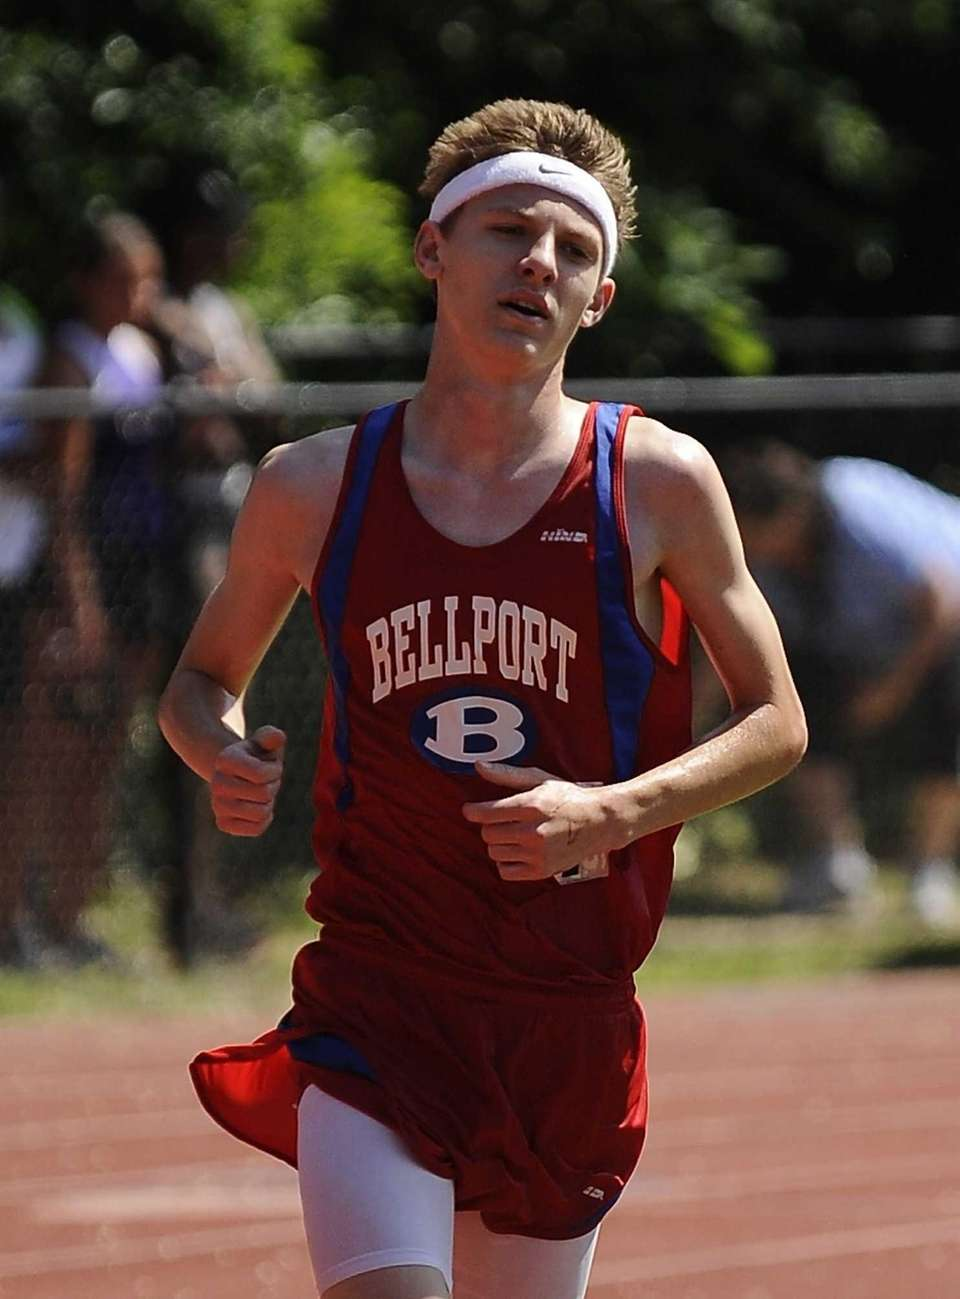 Bellport's Chris Swenson places first in the boys